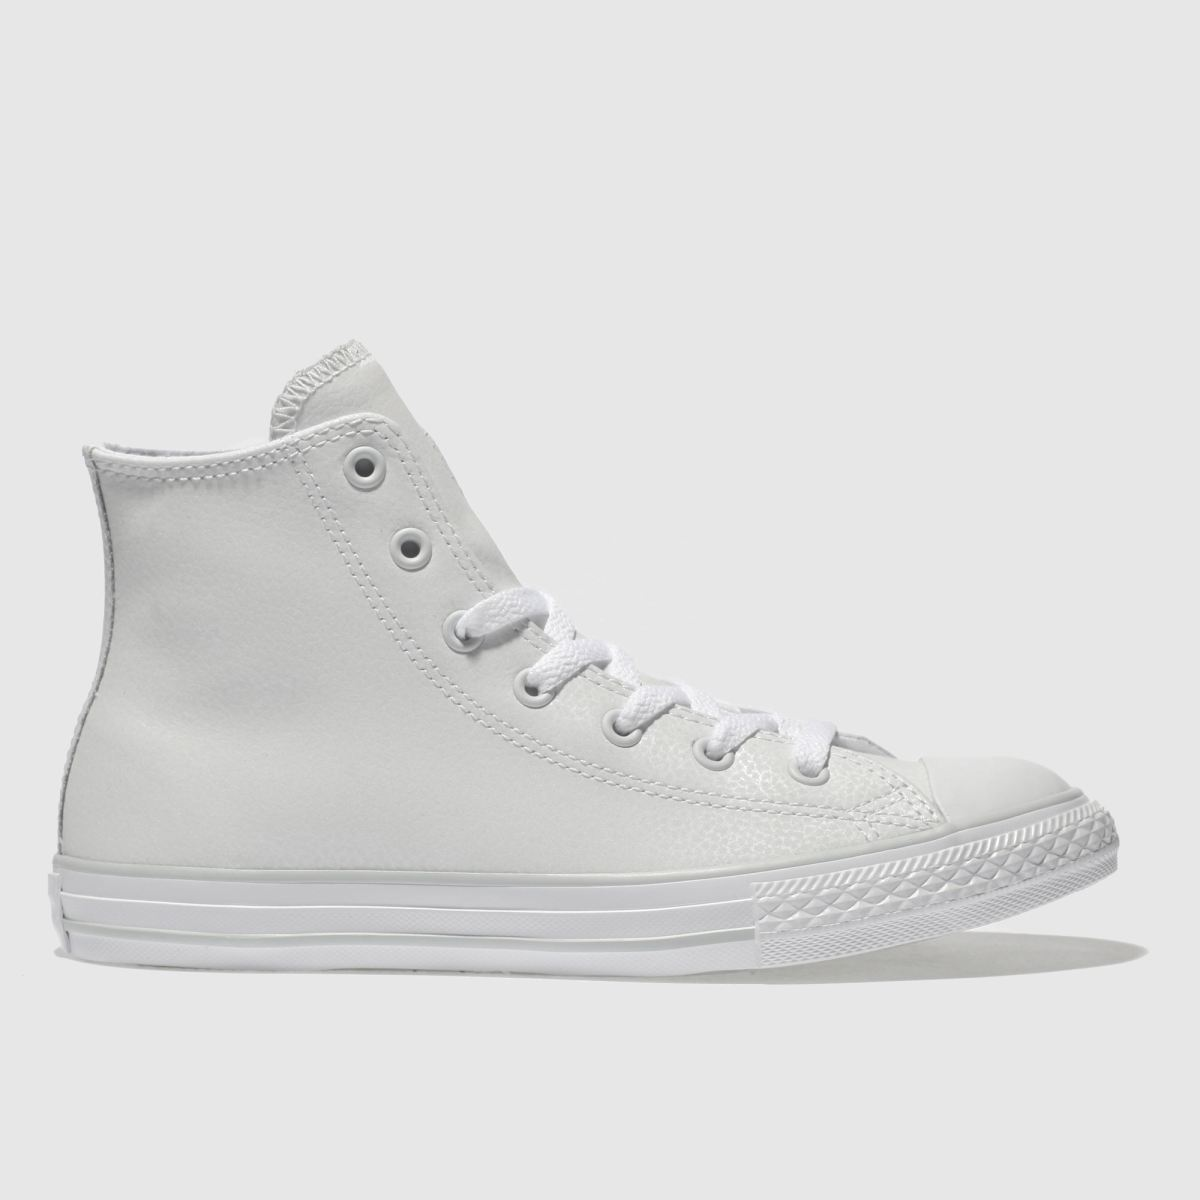 Converse White All Star Hi Leather Girls Youth Youth